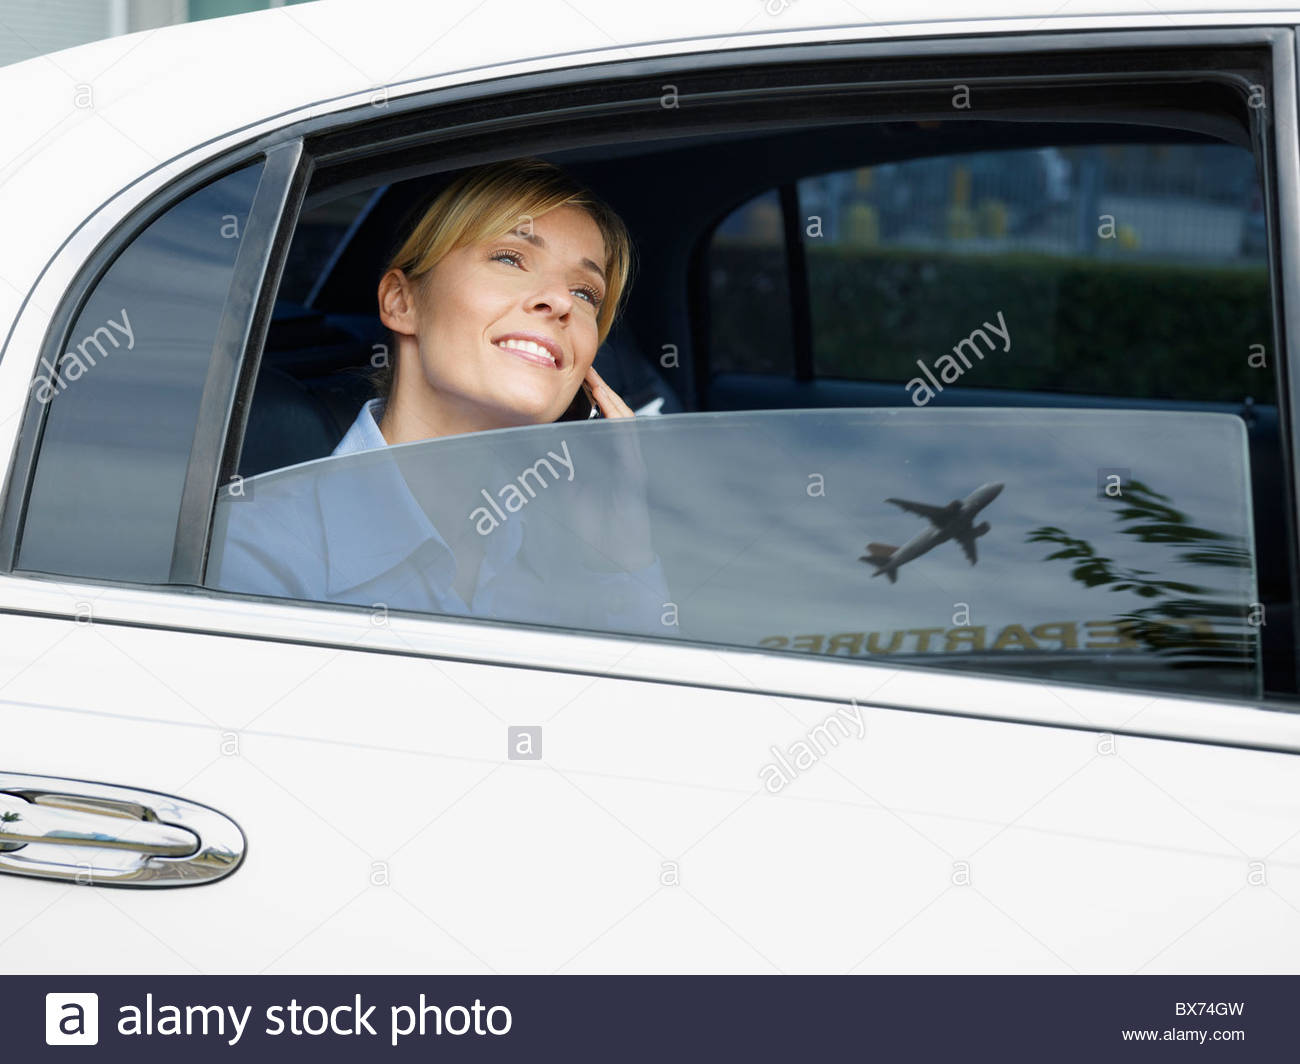 Businesswoman in limousine at airport - Stock Image